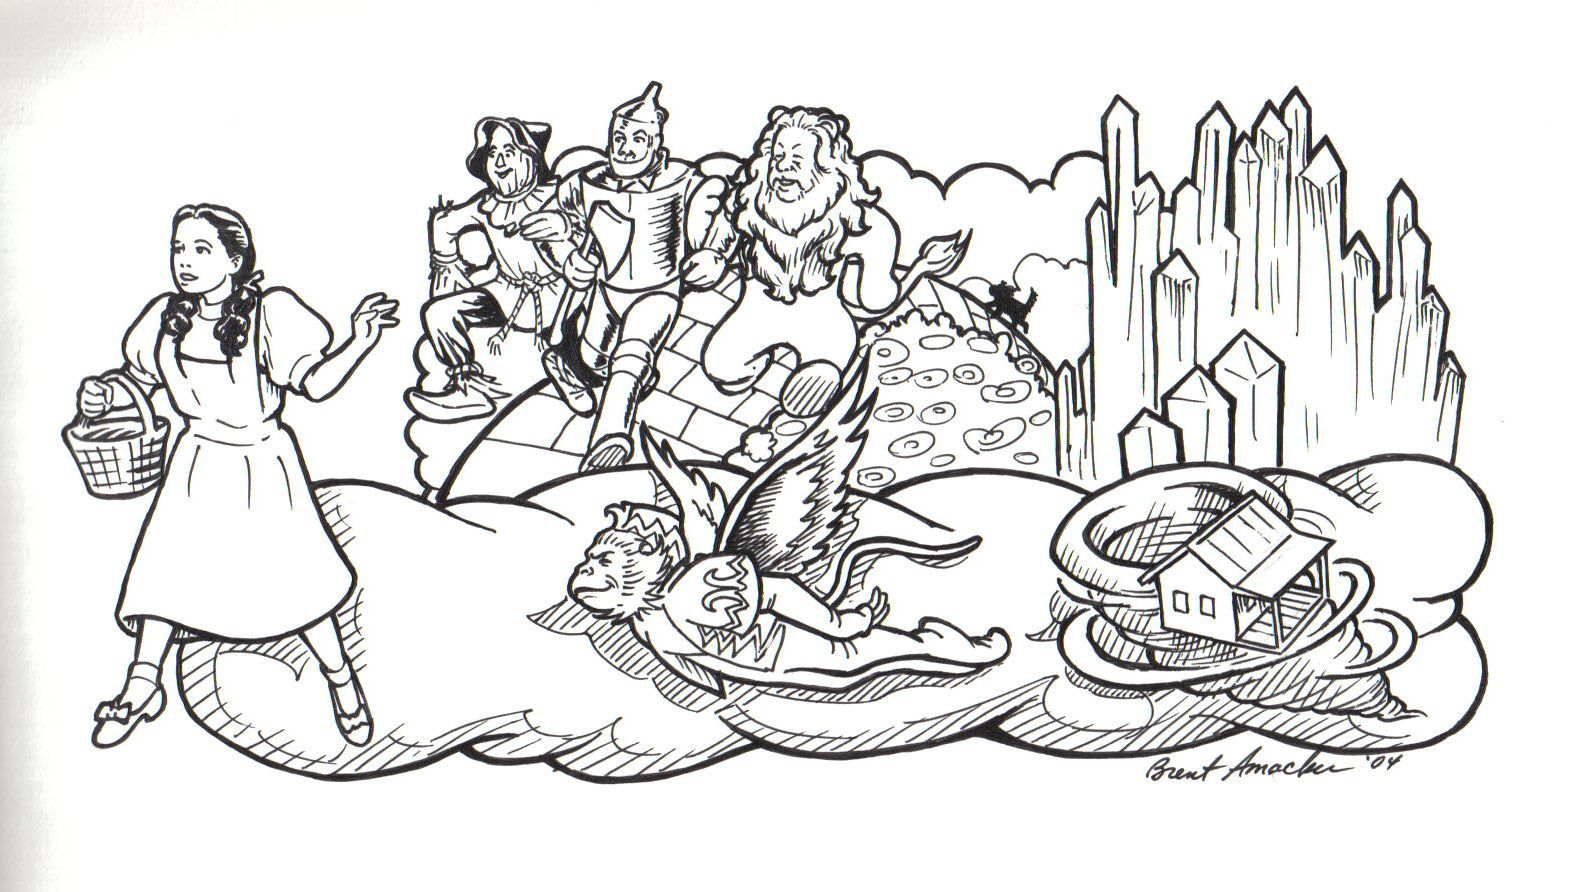 Wizard of oz coloring pages printable | Homecoming | Pinterest ...